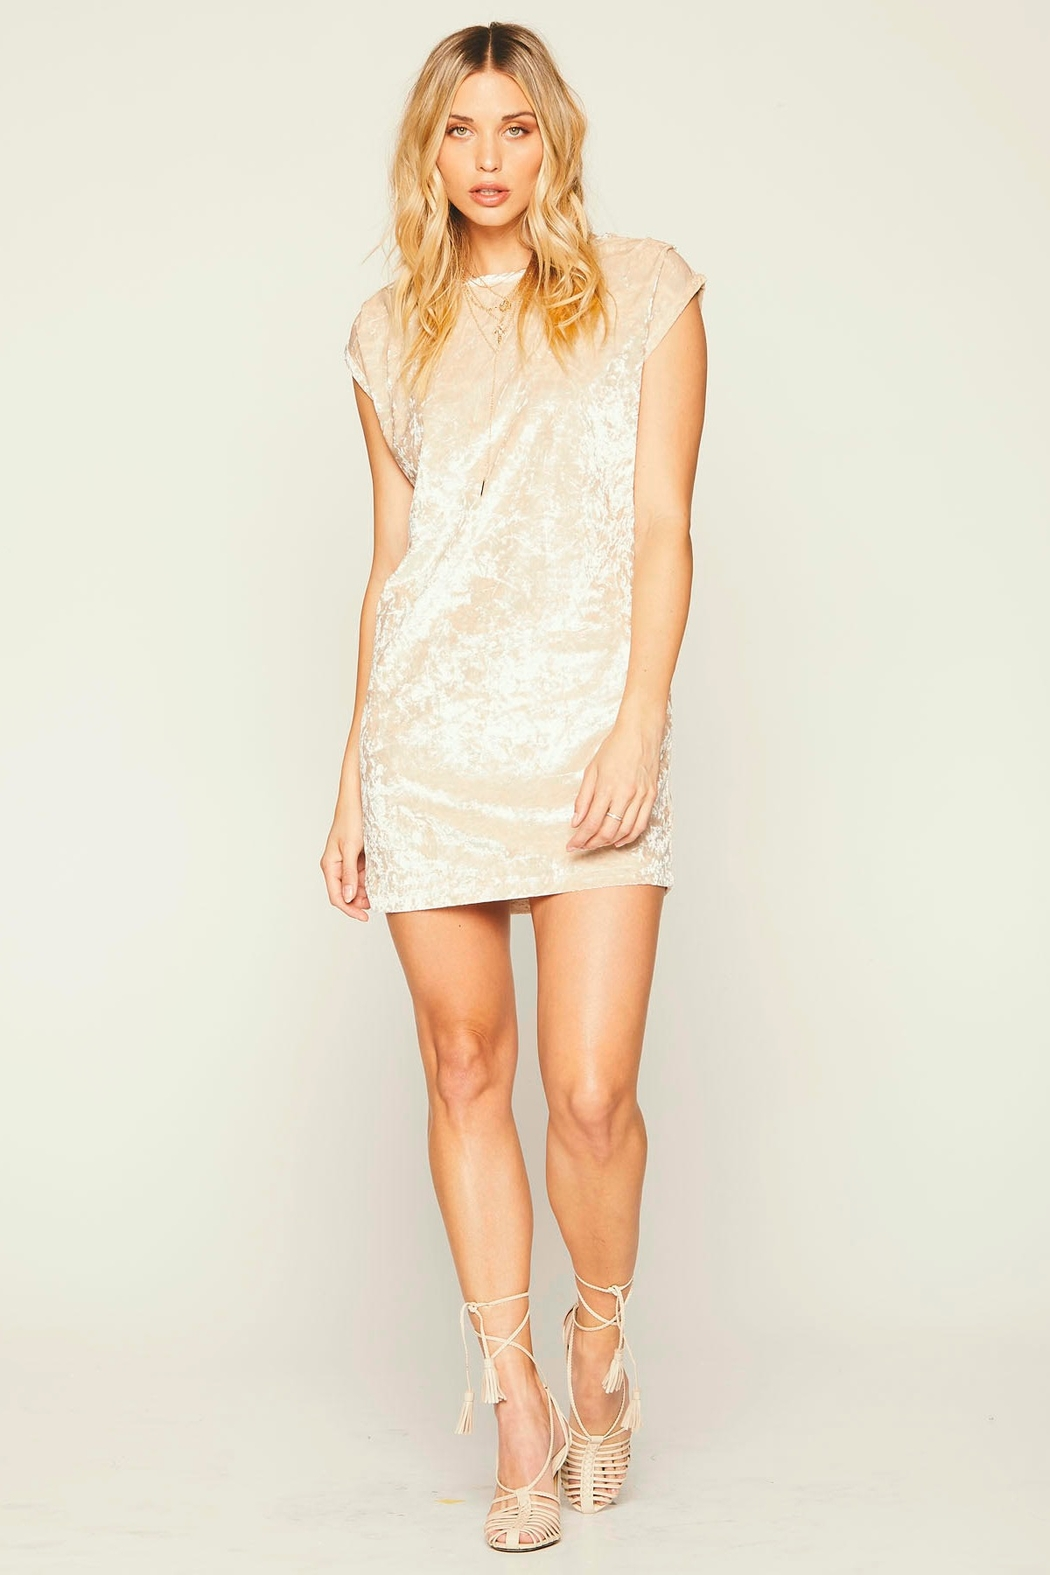 Knot Sisters Champagne Disco Dress - Main Image